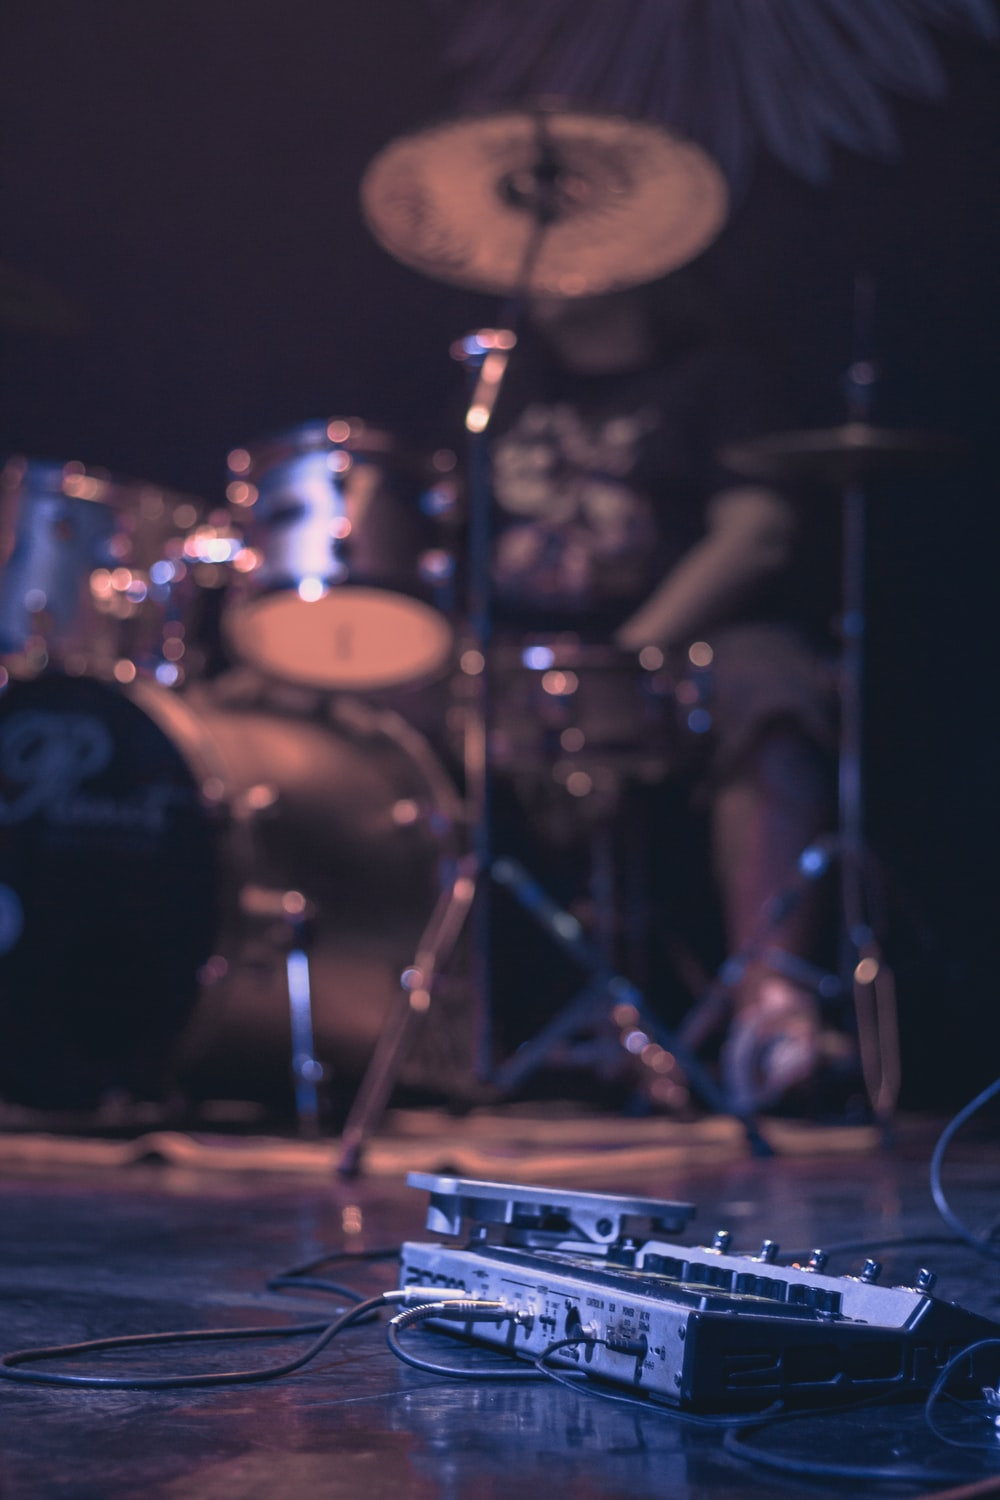 low-angle photography of man playing drum set